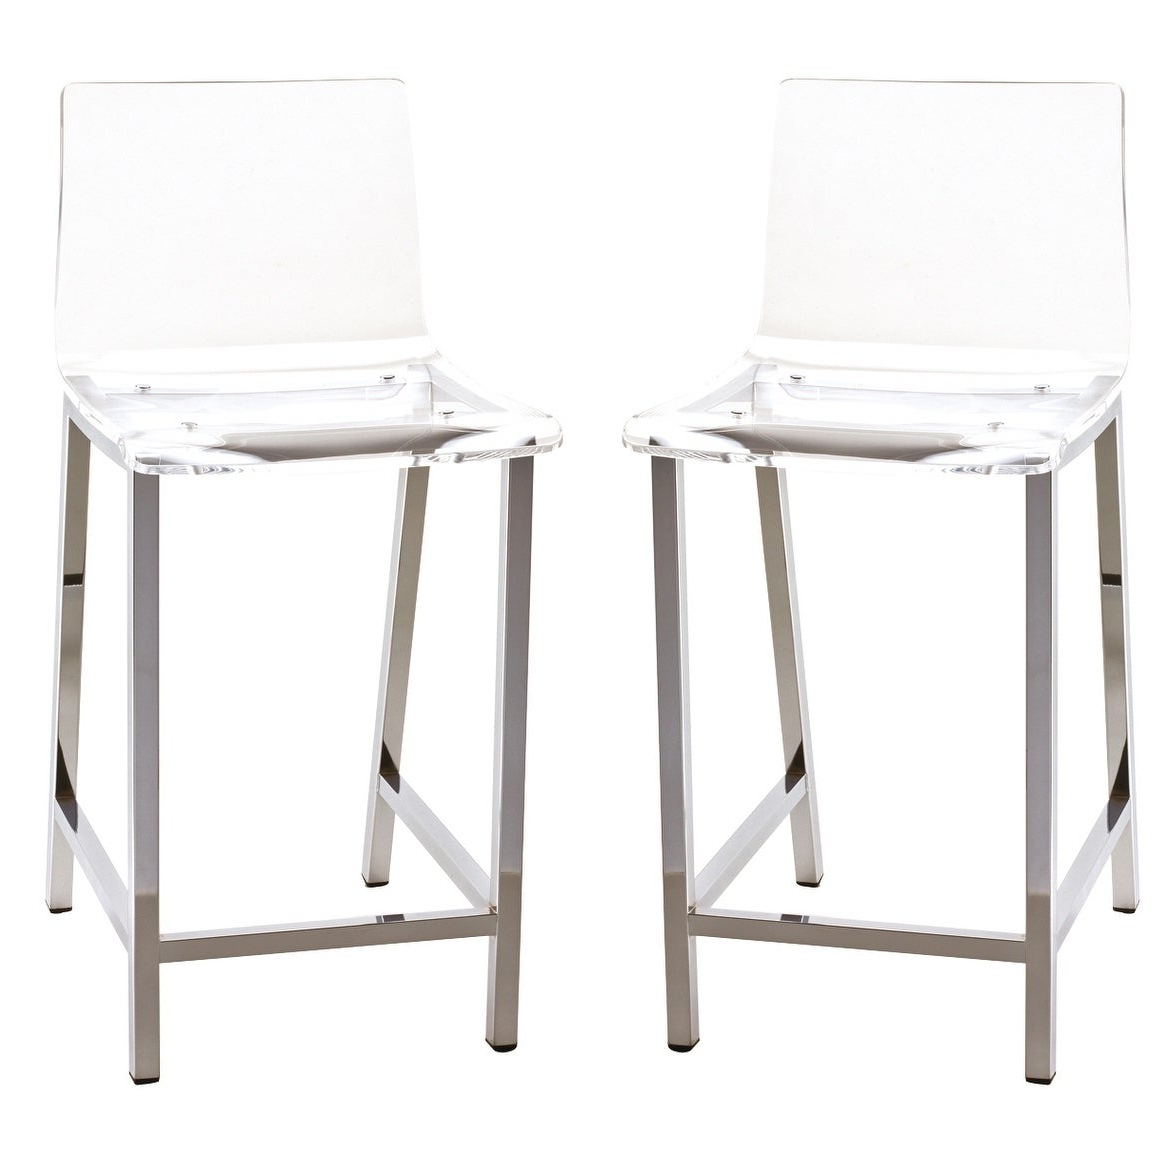 Silver Orchid Lederer Acylic Modern Stool (set Of 2) Throughout Well Known Svendsen Ceramic Garden Stools (View 29 of 30)